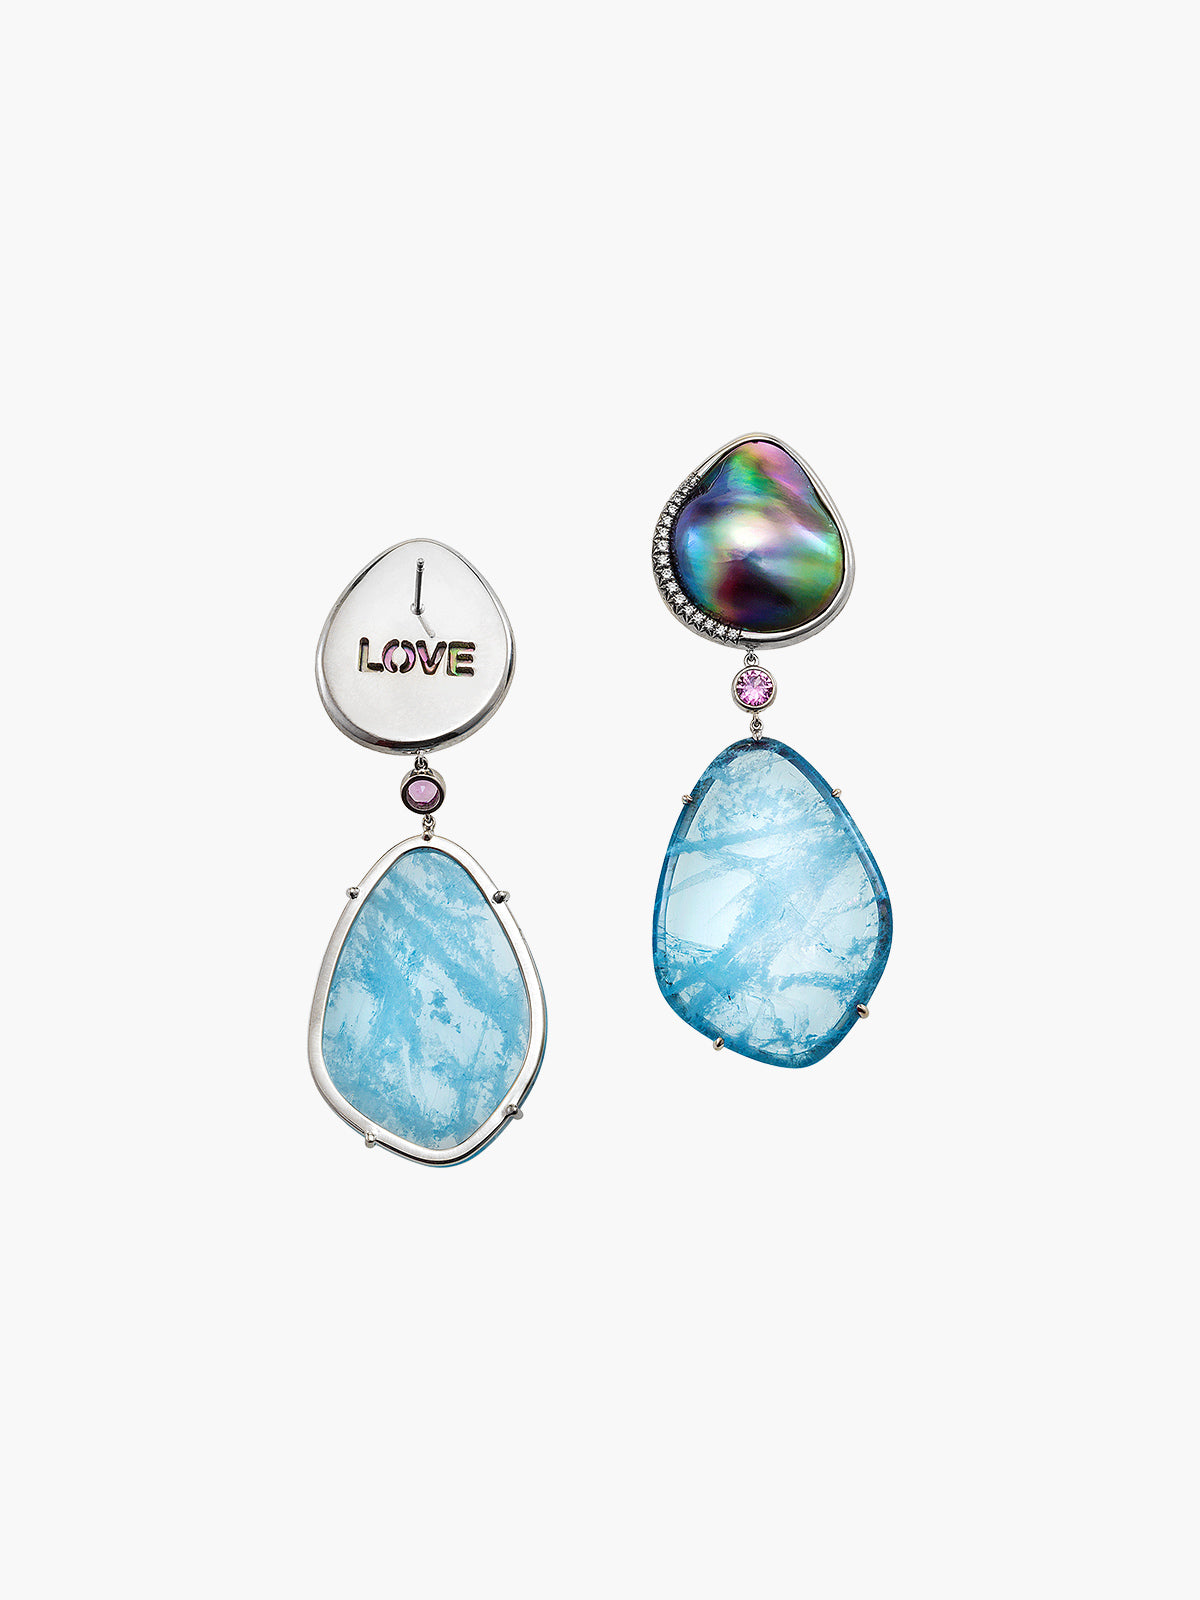 Belize Dreams Earrings